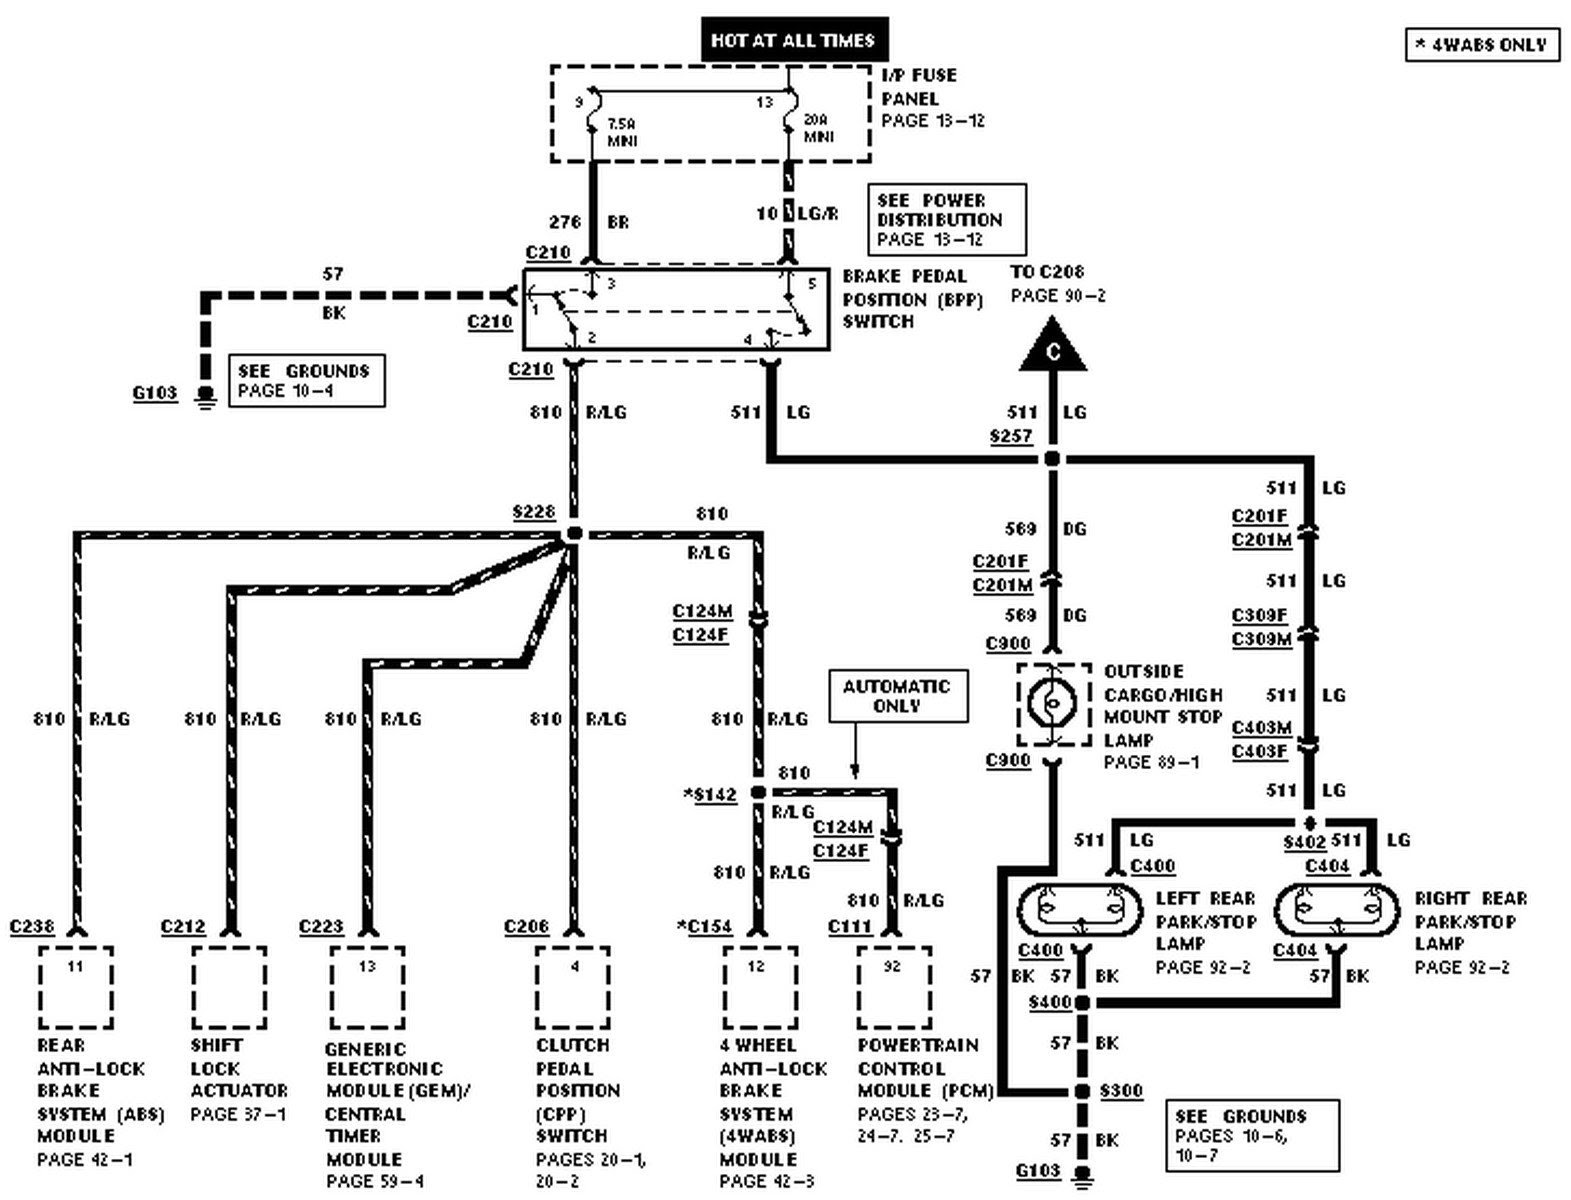 1985 Ford Ranger Lights Wiring Diagram Full Hd Version Wiring Diagram Tojadiagram Emballages Sous Vide Fr